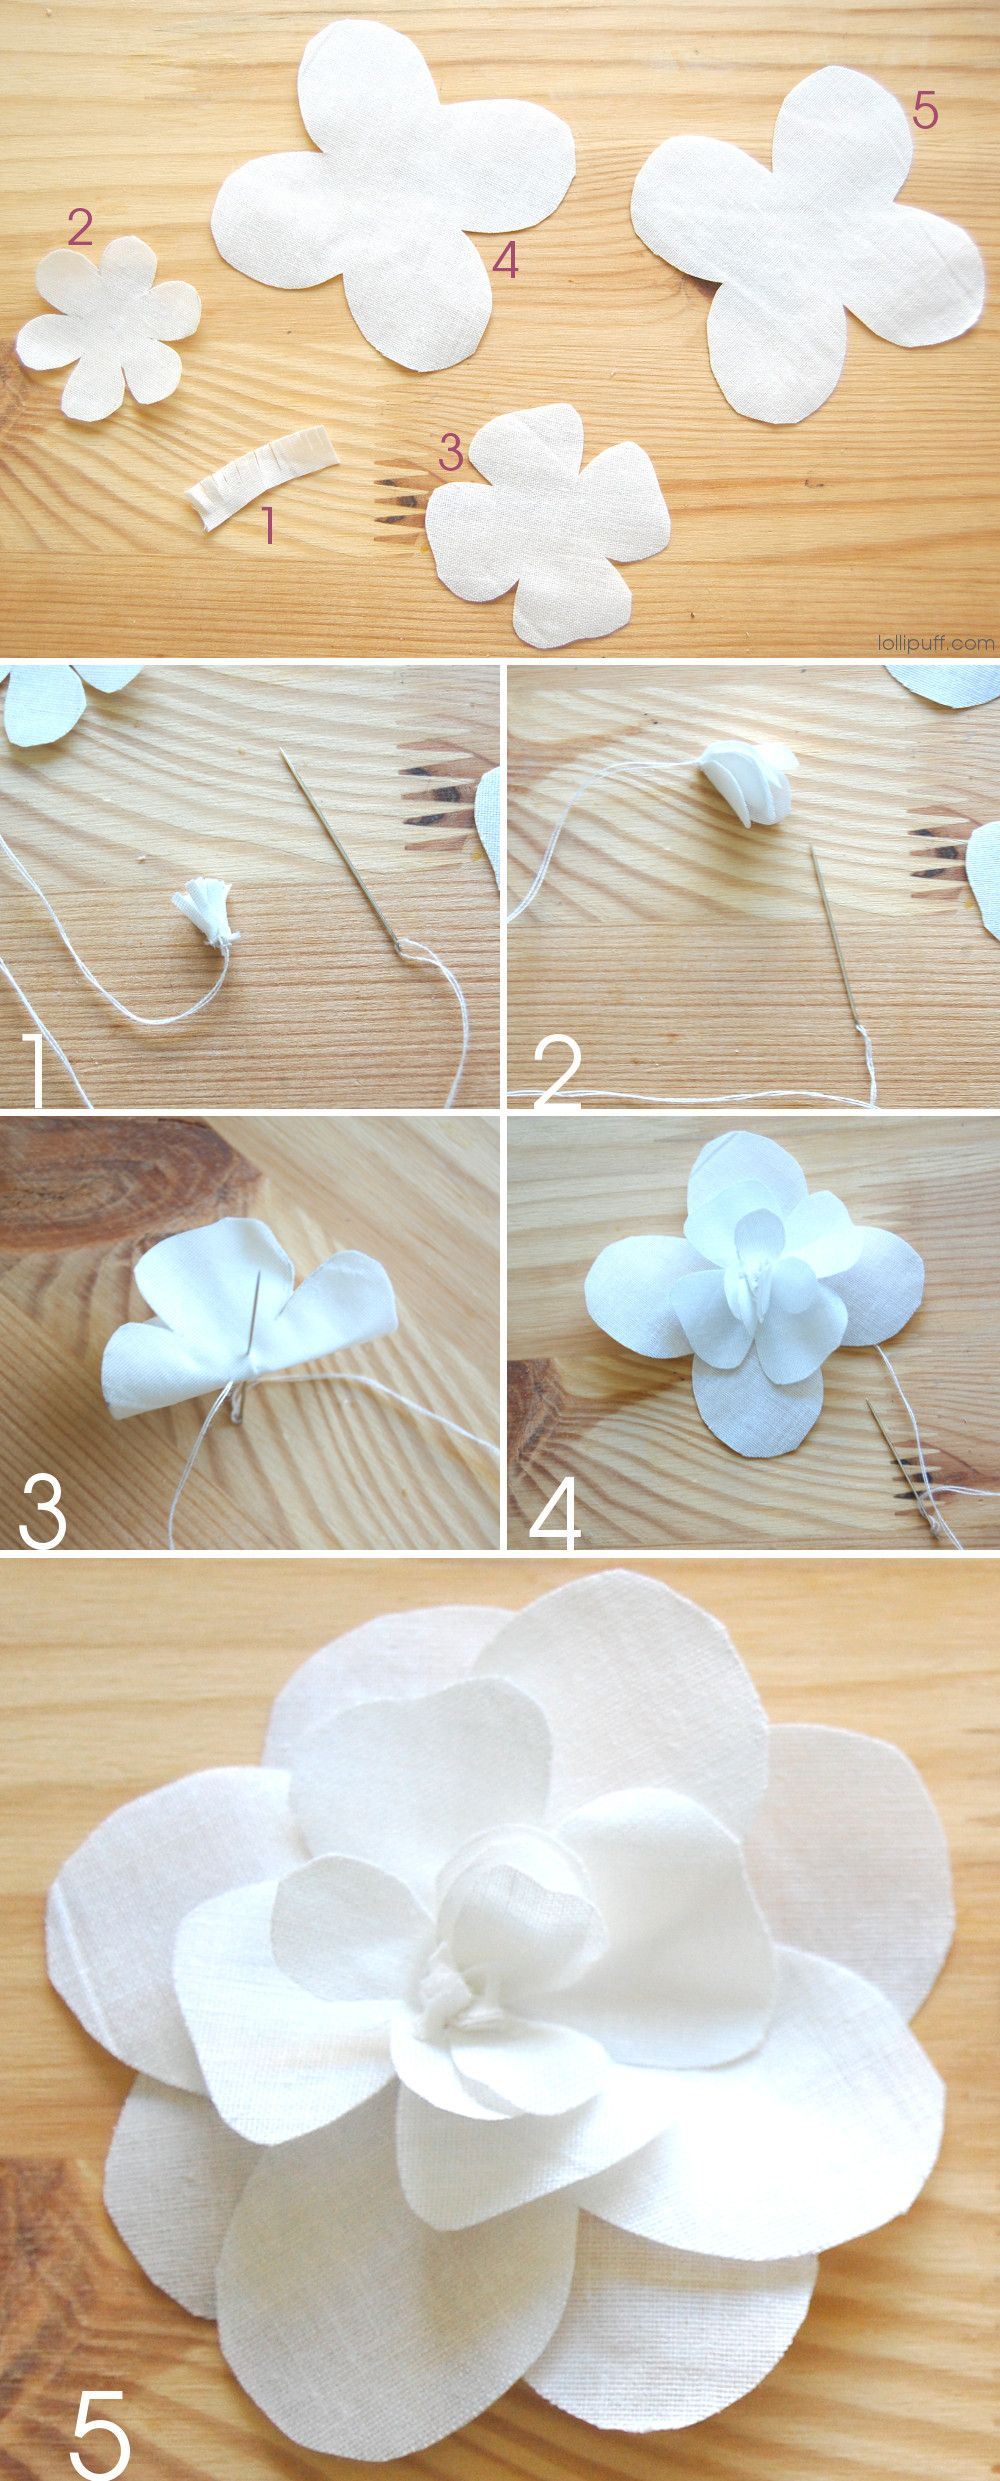 Diy Chanel White Fabric Flower Tutorial Diy Inspired By Designers